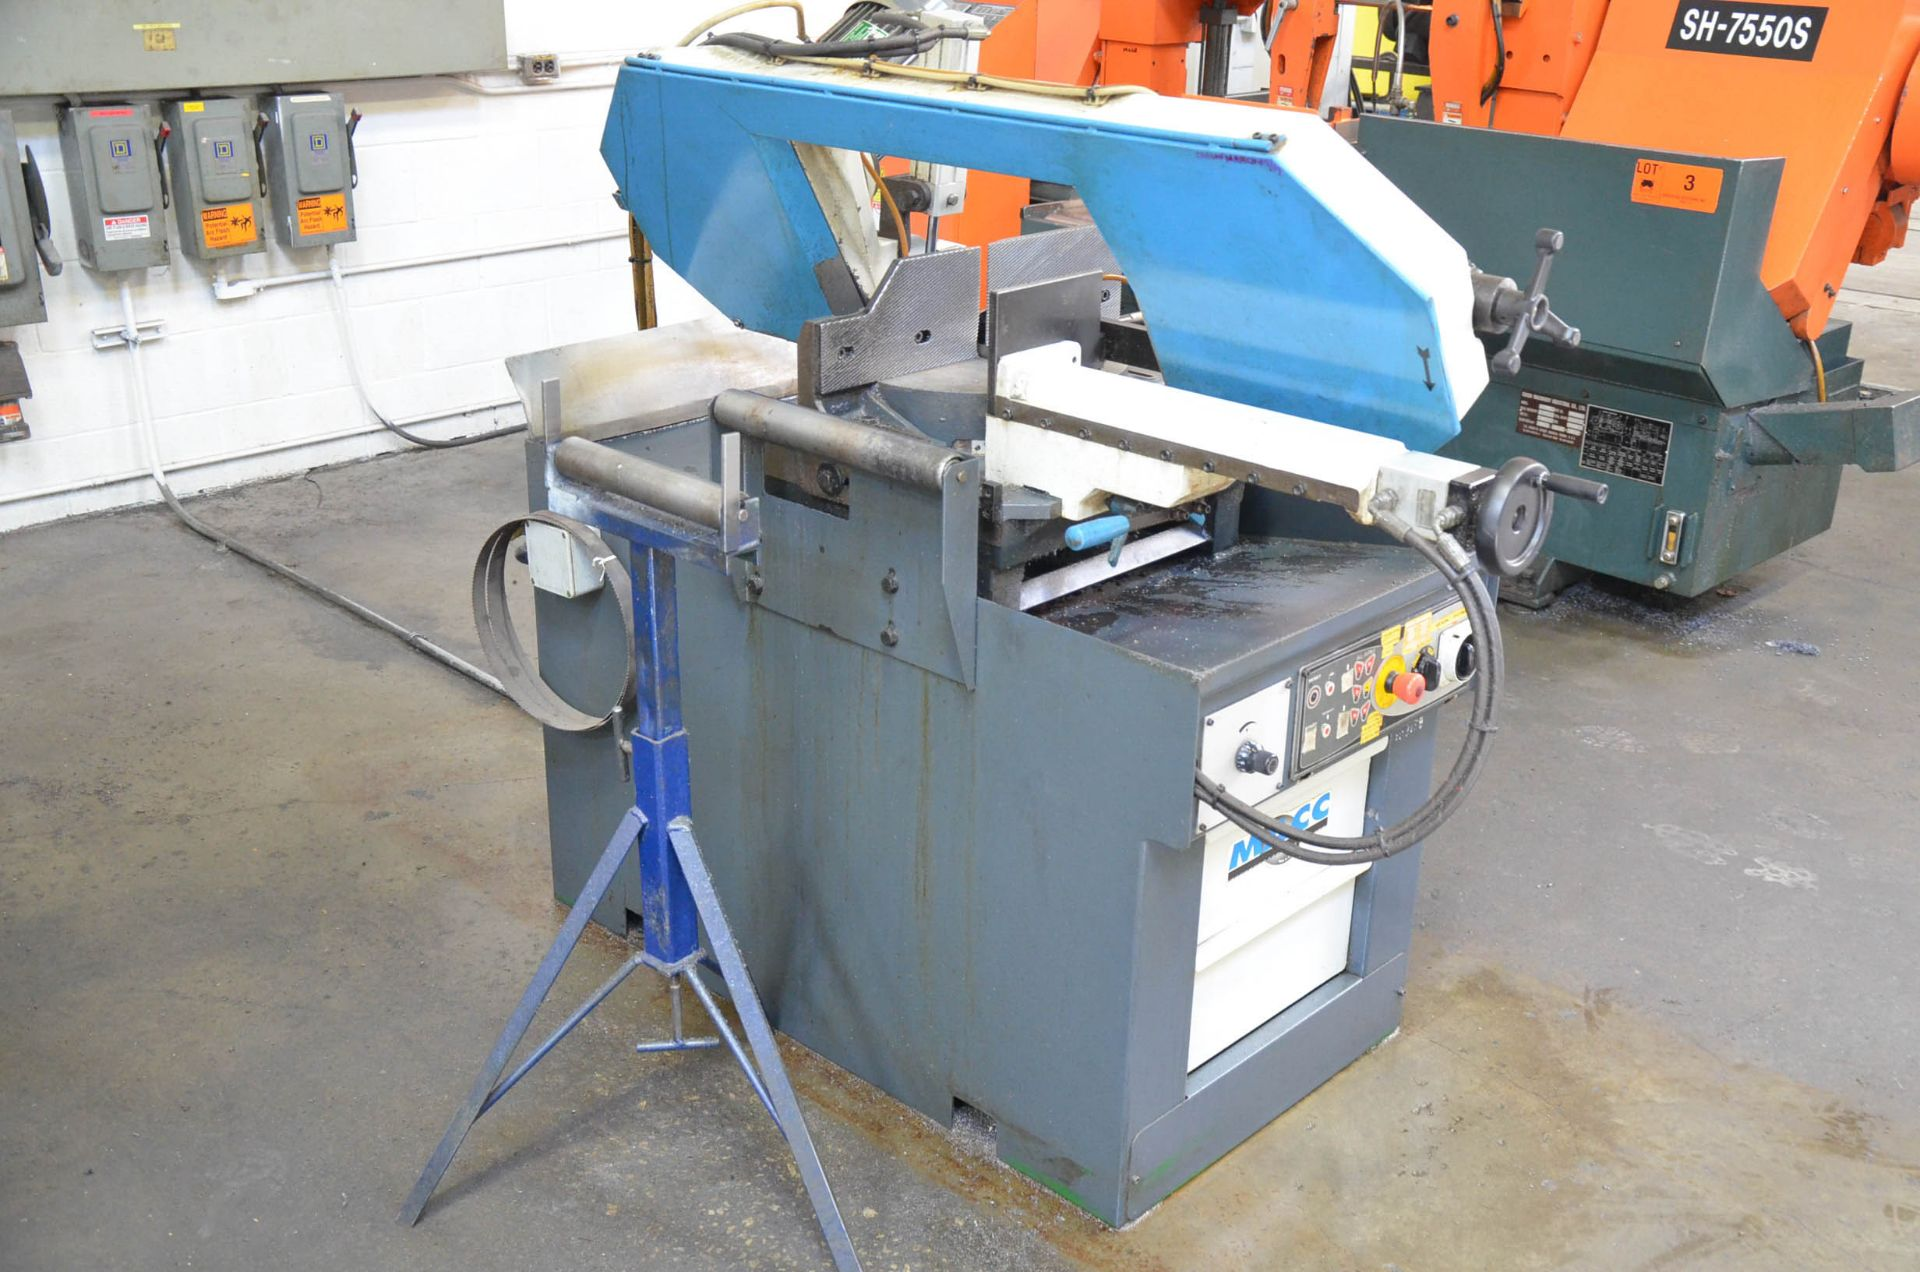 """MACC (2008) SPECIAL 400 SI 16"""" METAL CUTTING HORIZONTAL BAND SAW WITH MITER CAPABILITY, COOLANT, - Image 3 of 6"""